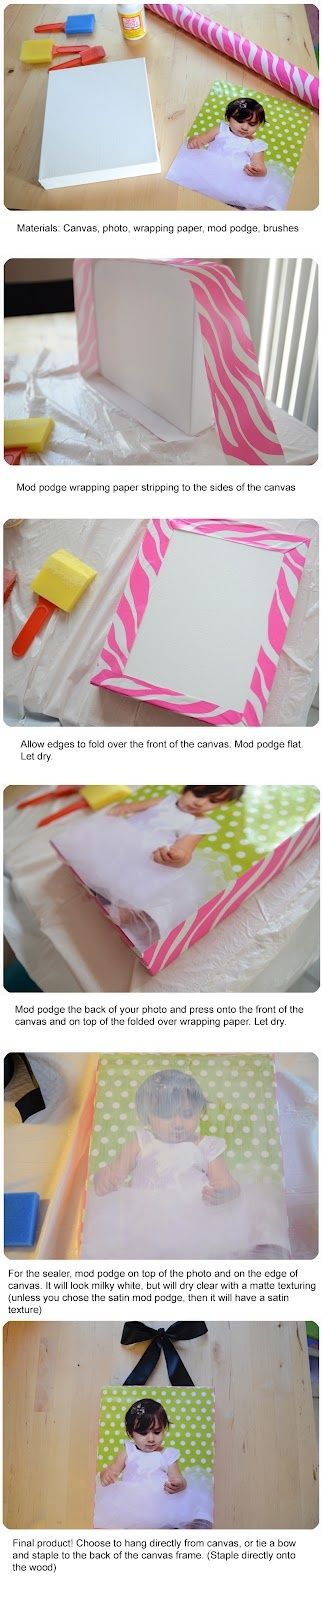 DIY Canvas Photo: Canvas Photos, Wrapping Papers, Diy Crafts, Gift Ideas, Diy Canvas, Photo Canvas, Craft Ideas, Diy Projects